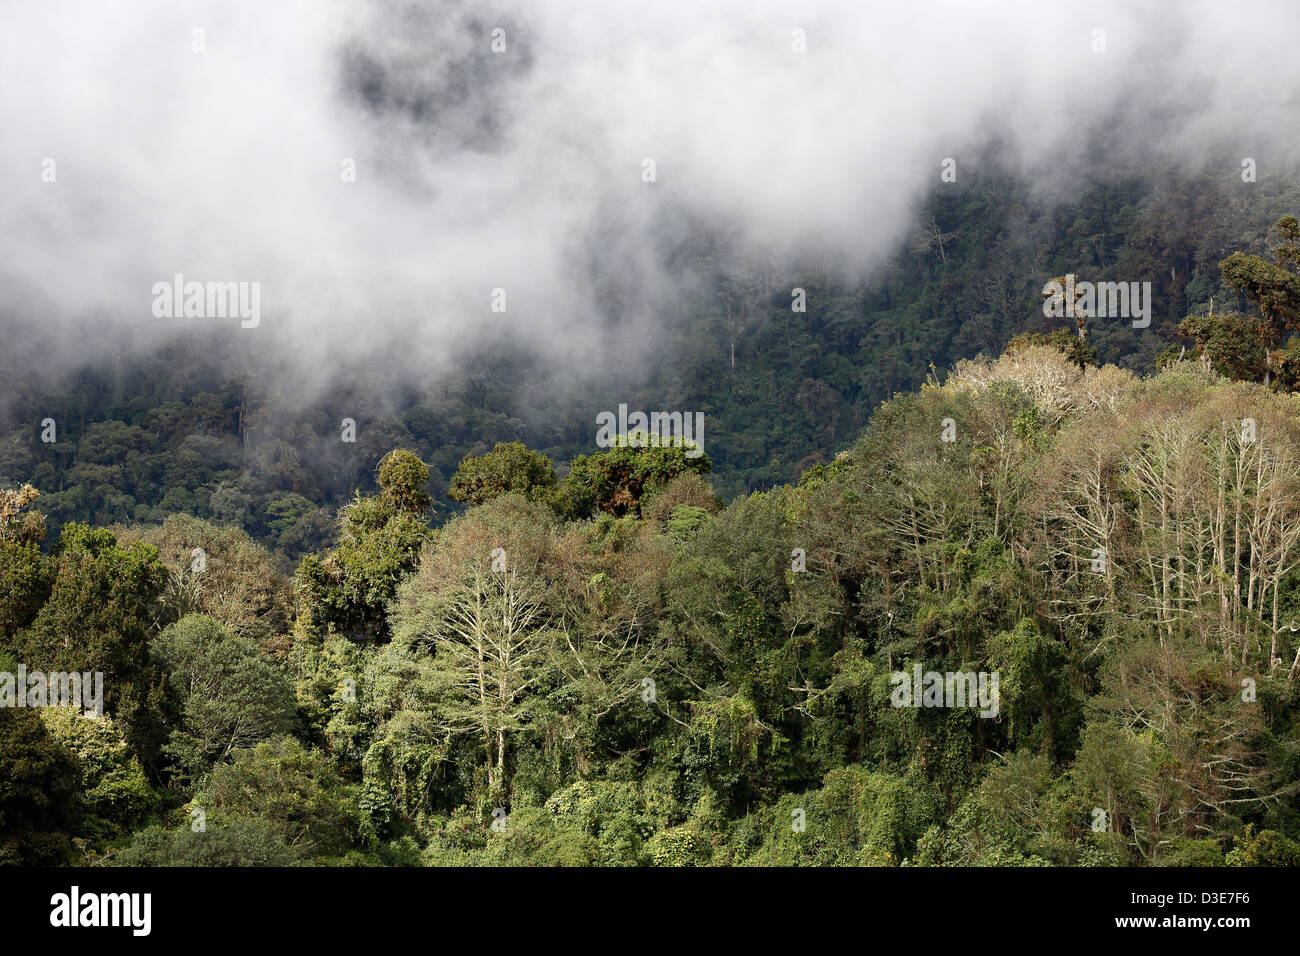 Mist on a forested ridge, Parque Nacional Volcan Baru, Panama - Stock Image